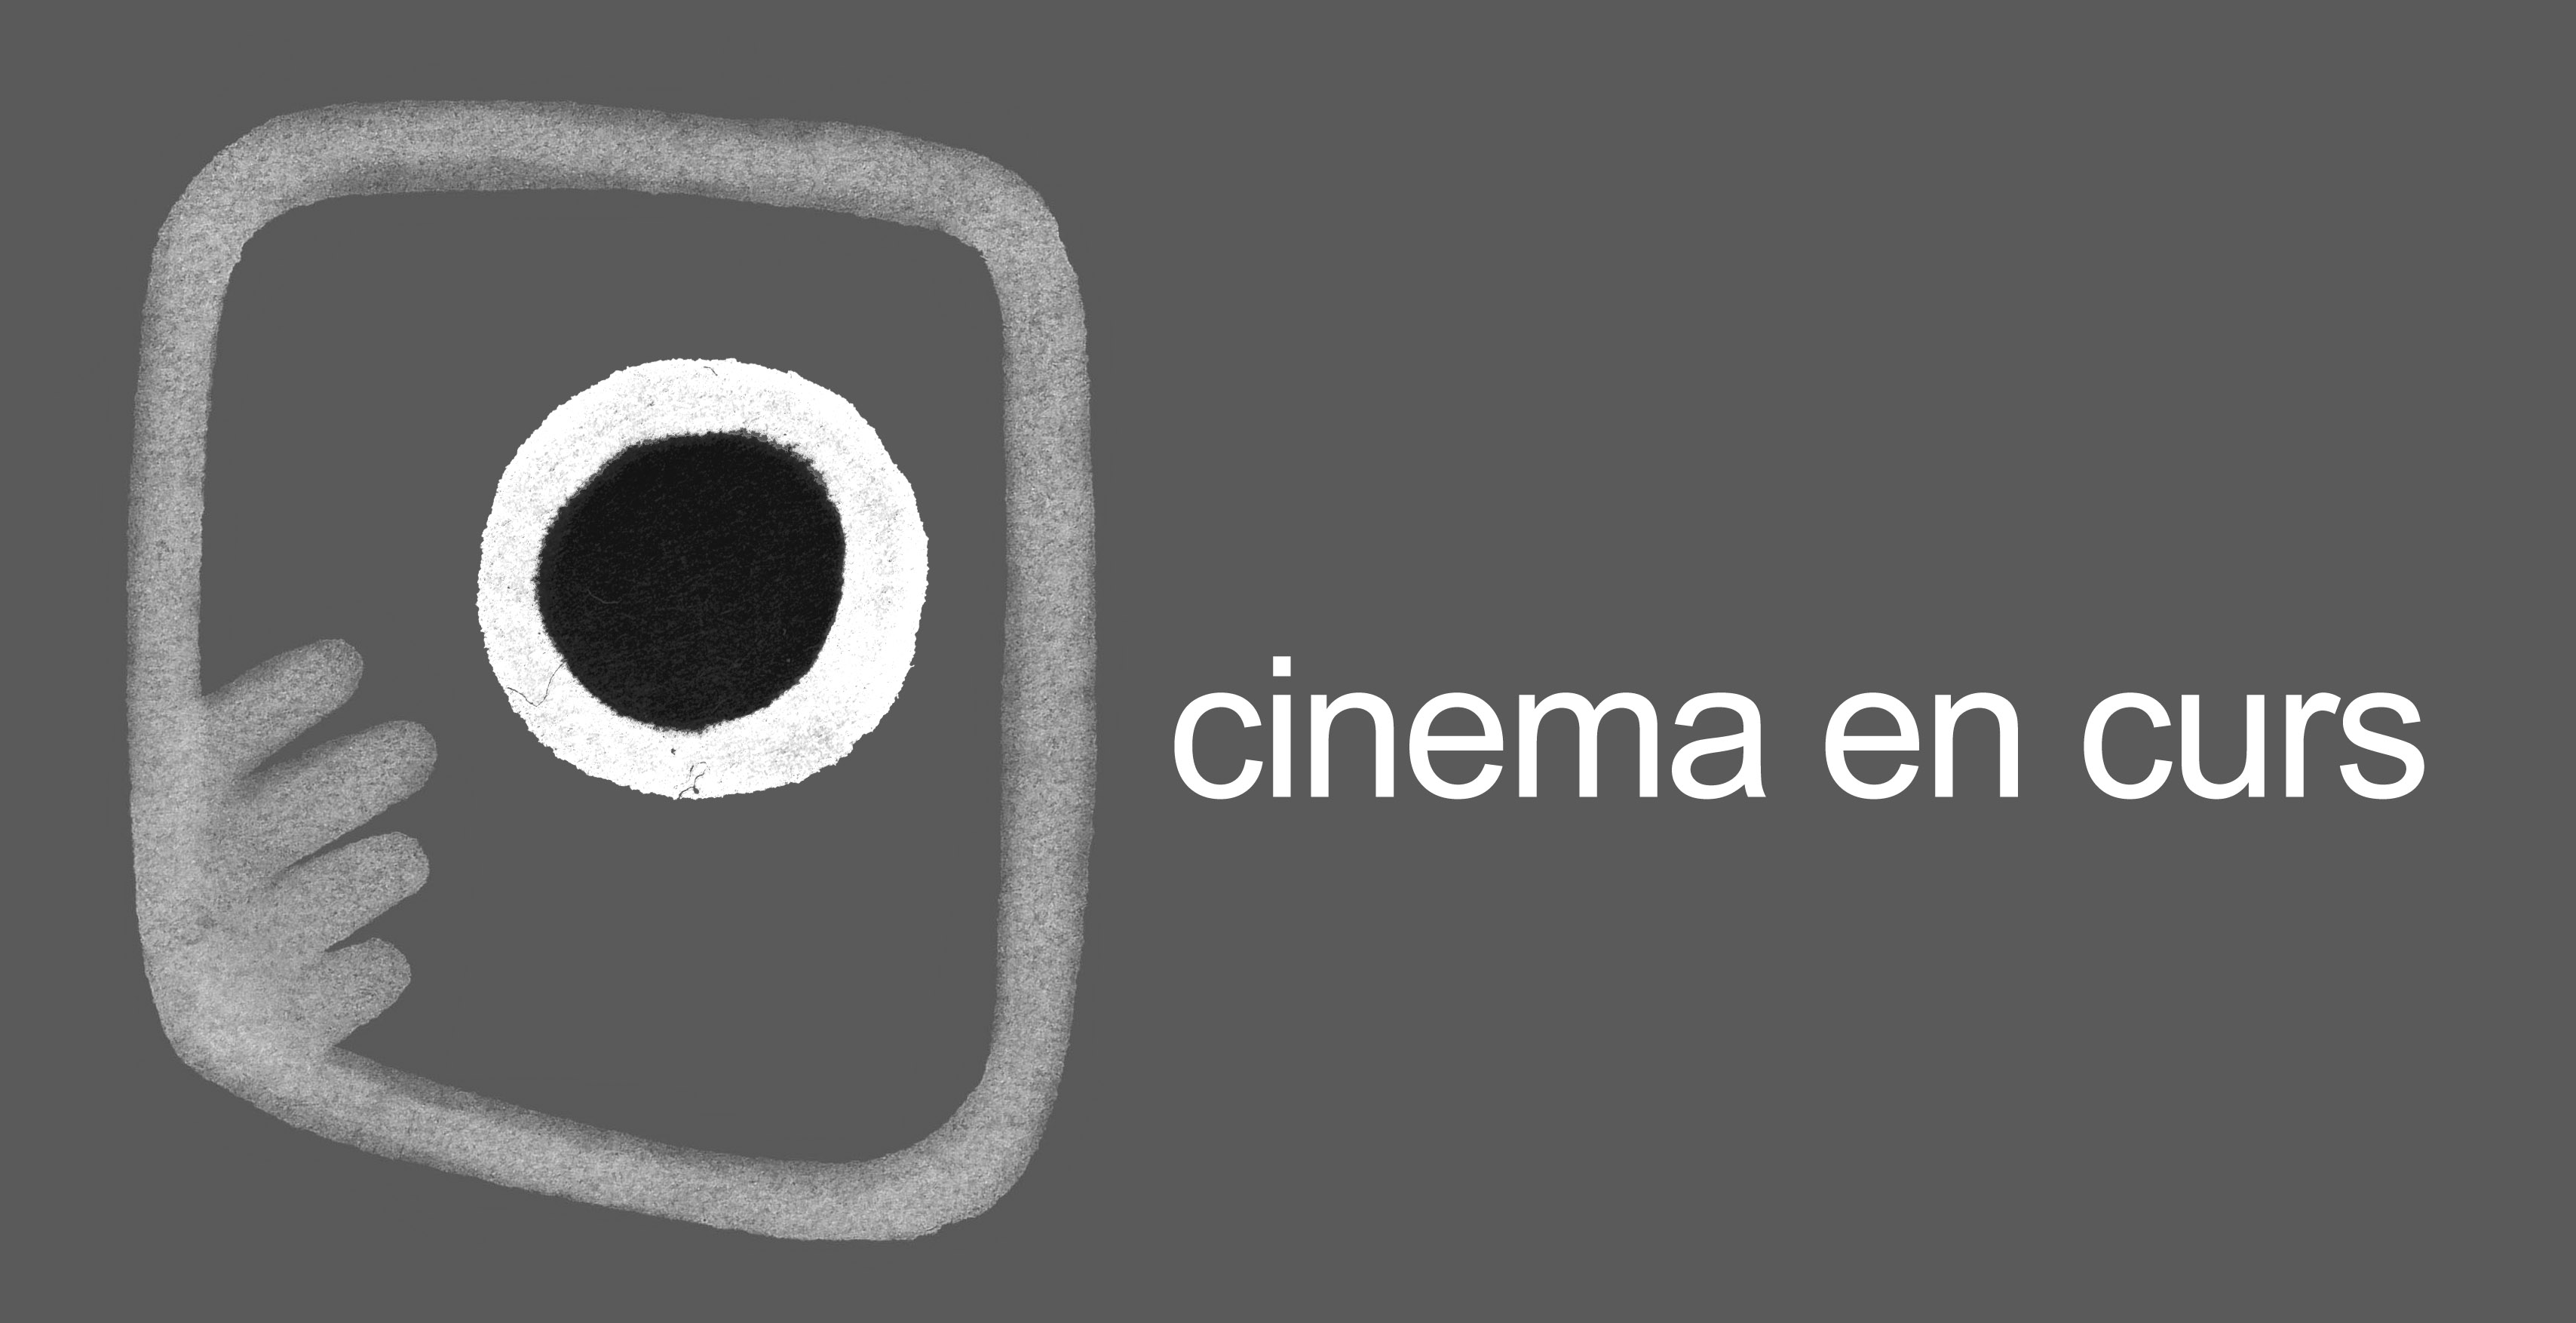 cinema-en-curs-1.jpg